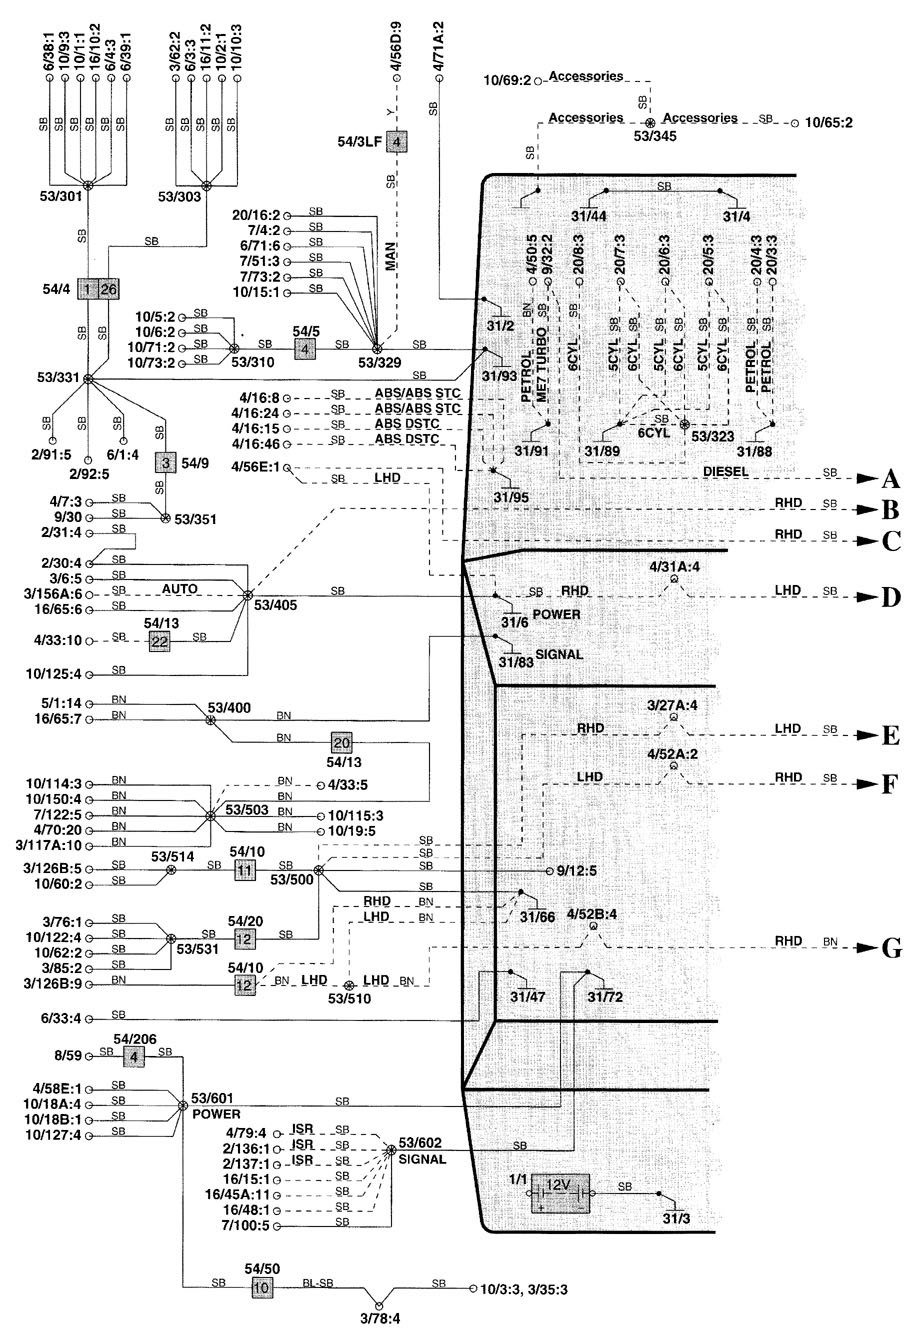 Volvo Wiring Schematic Nice Place To Get Diagram A30d V70 2000 Diagrams Ground Distribution 99 Radio